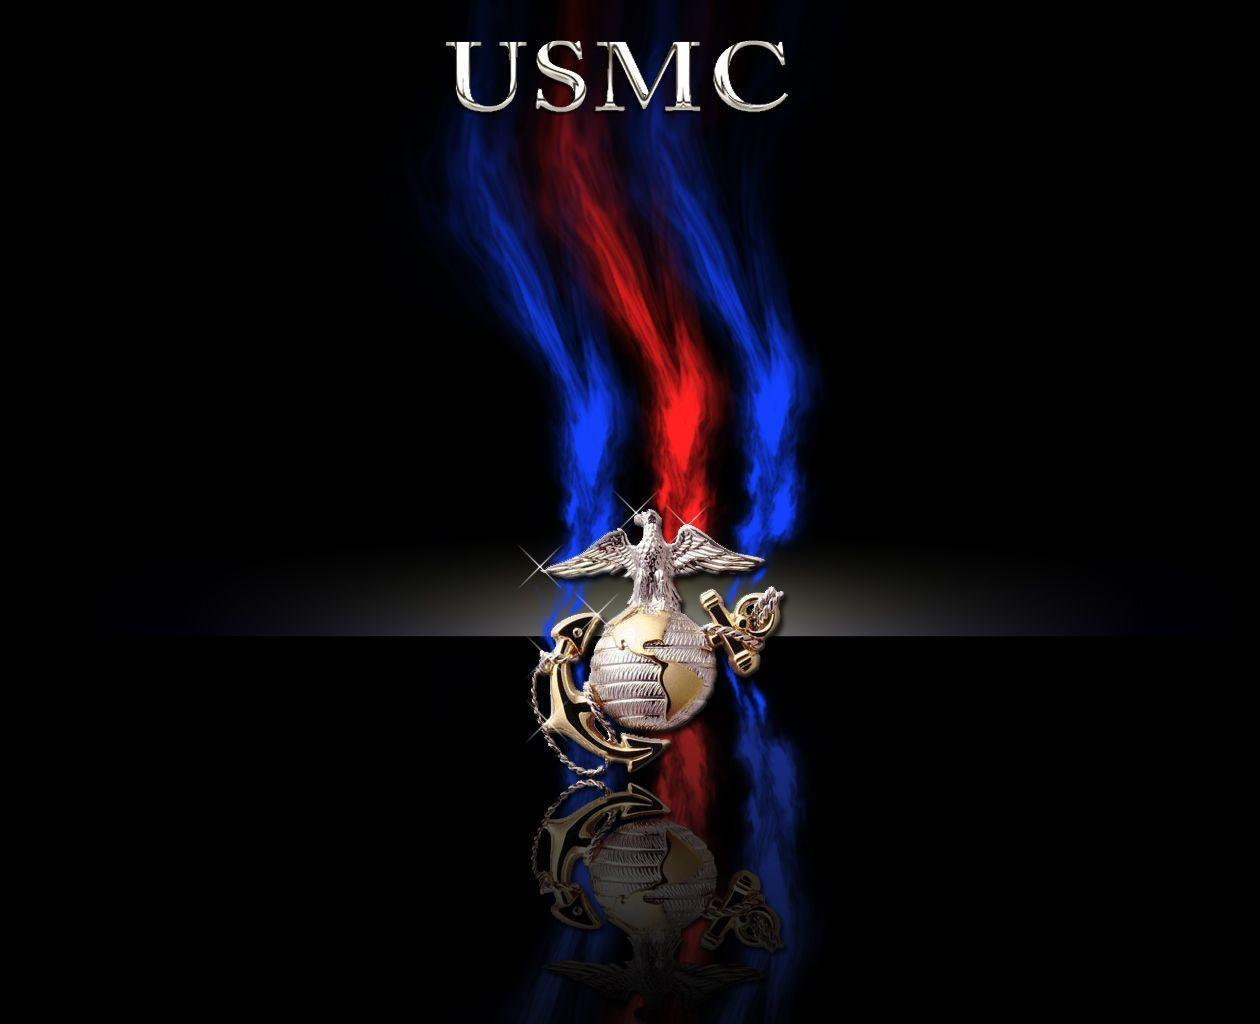 USMC Desktop Backgrounds 1260x1024